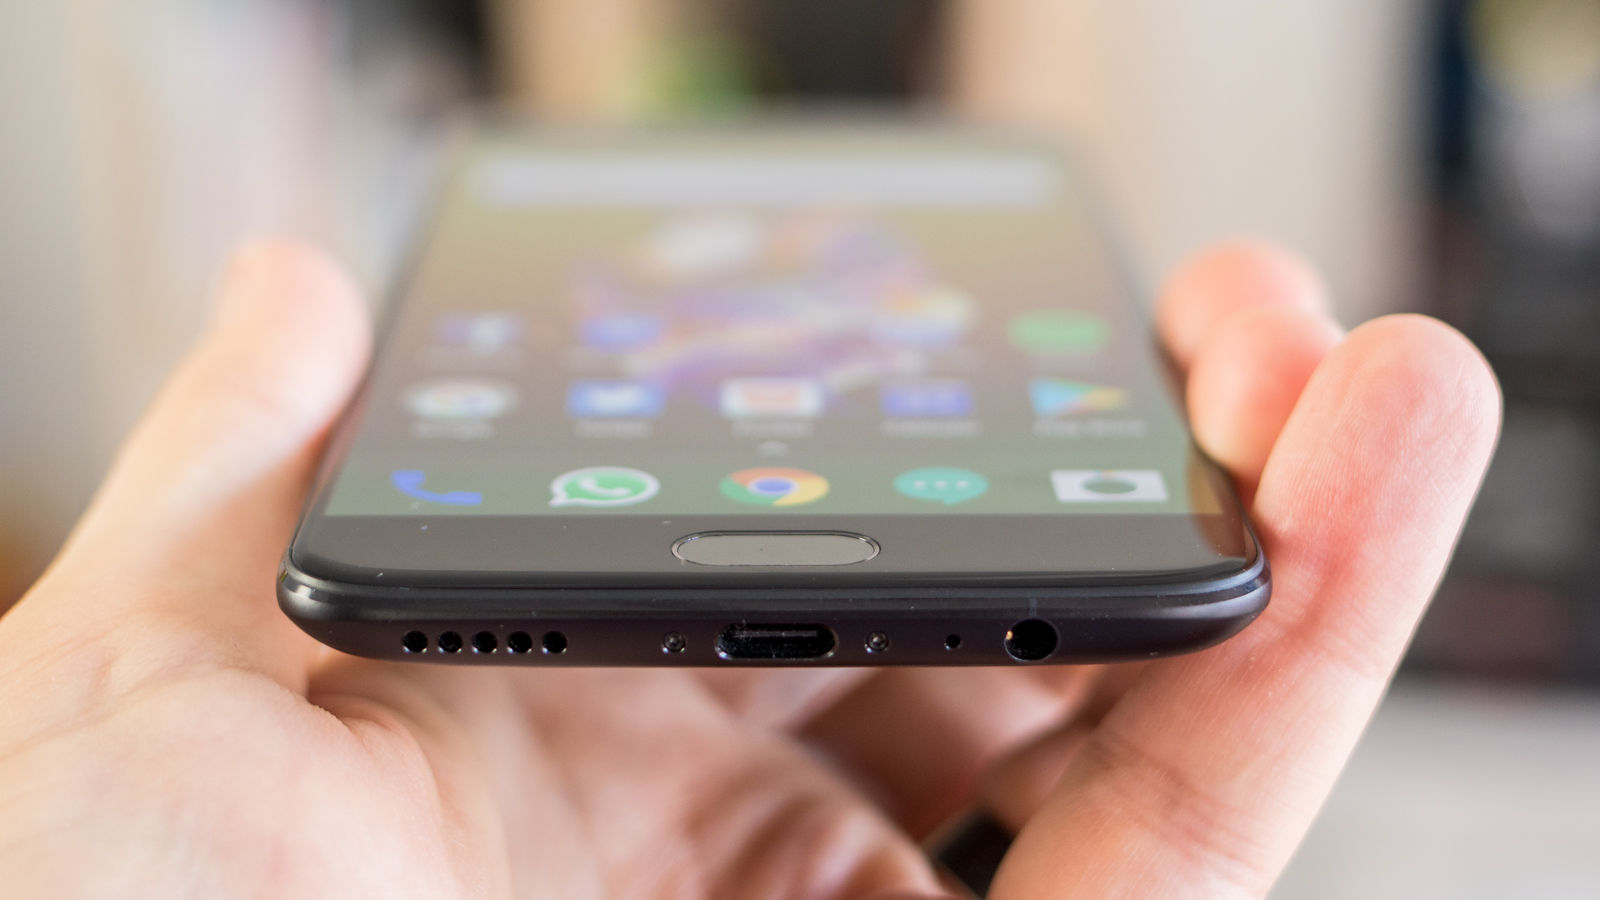 OnePlus keeping the 3.5mm headphone jack on OnePlus 5T & here's why 1